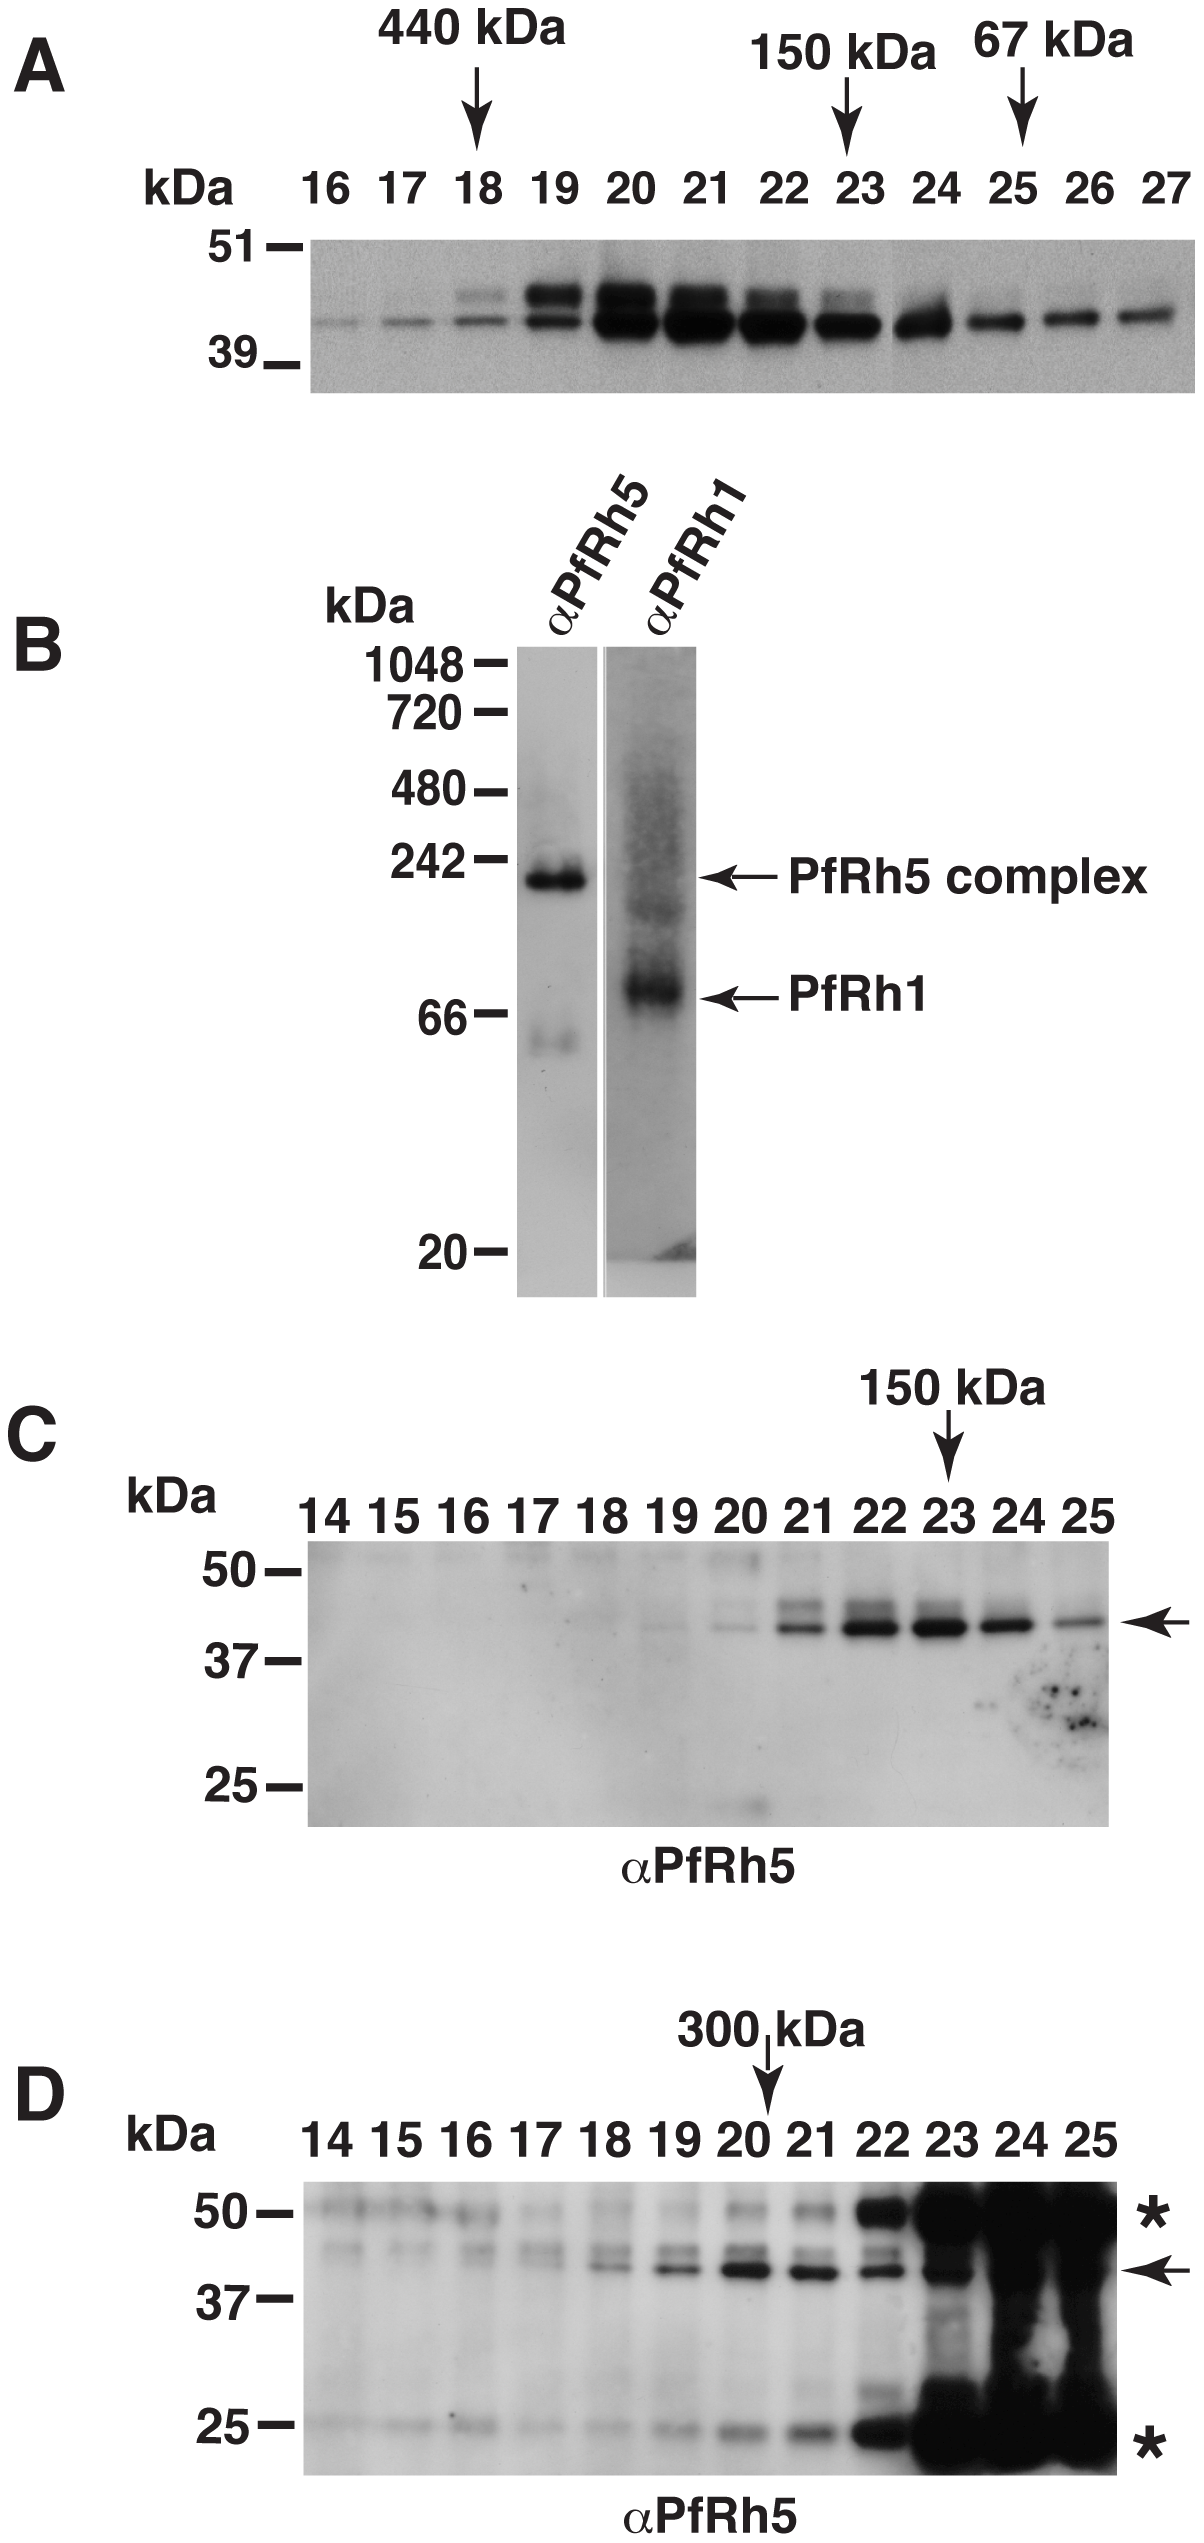 The processed 45 kDa PfRh5 C-terminal domain exists as a larger complex.